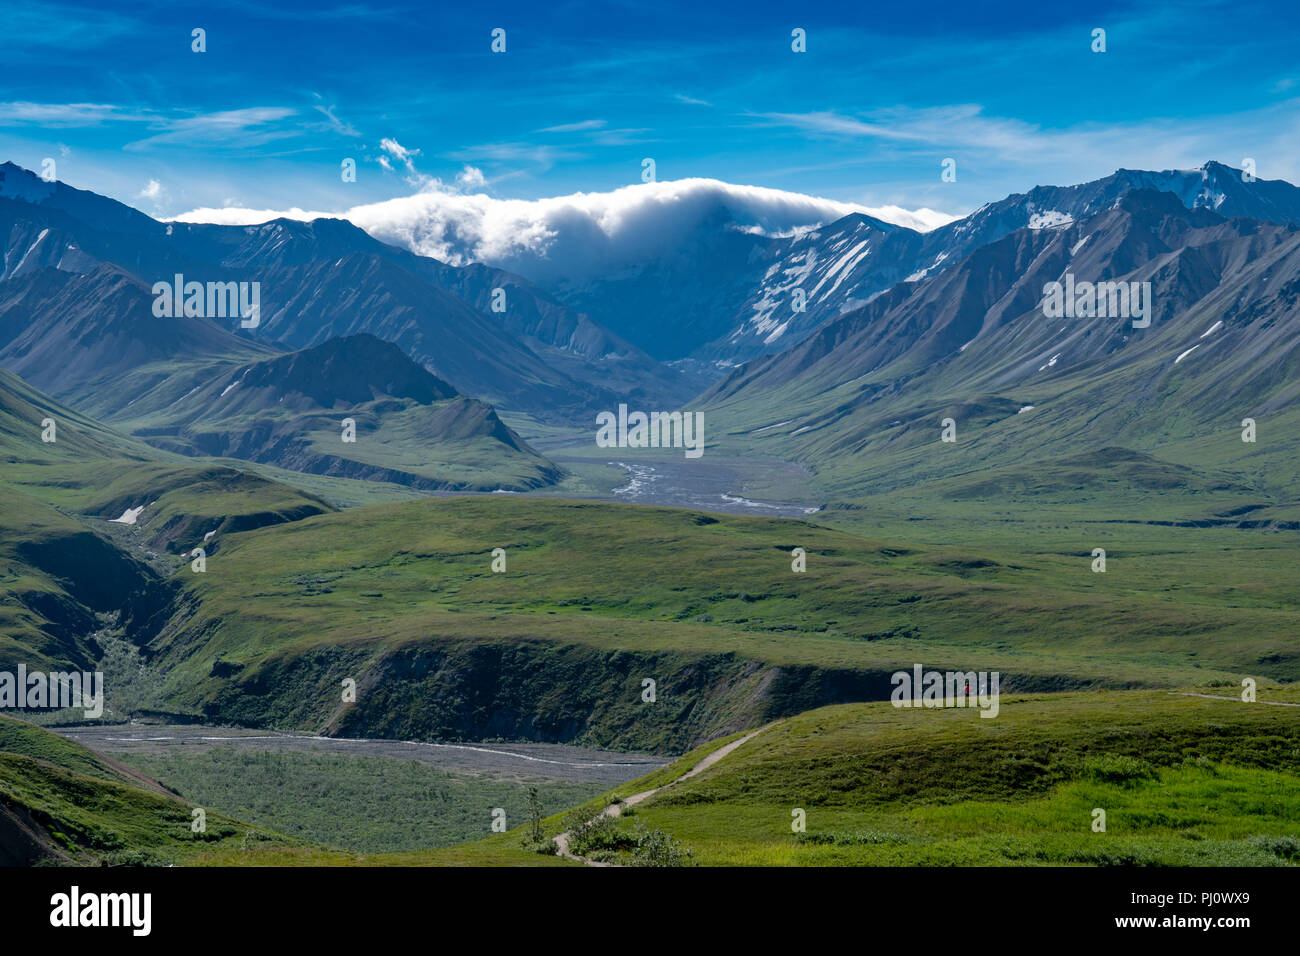 View of the Alaska Range mountains from Eielson Visitors Center in Denali National Park as storm clouds roll in over the mountain peaks Stock Photo